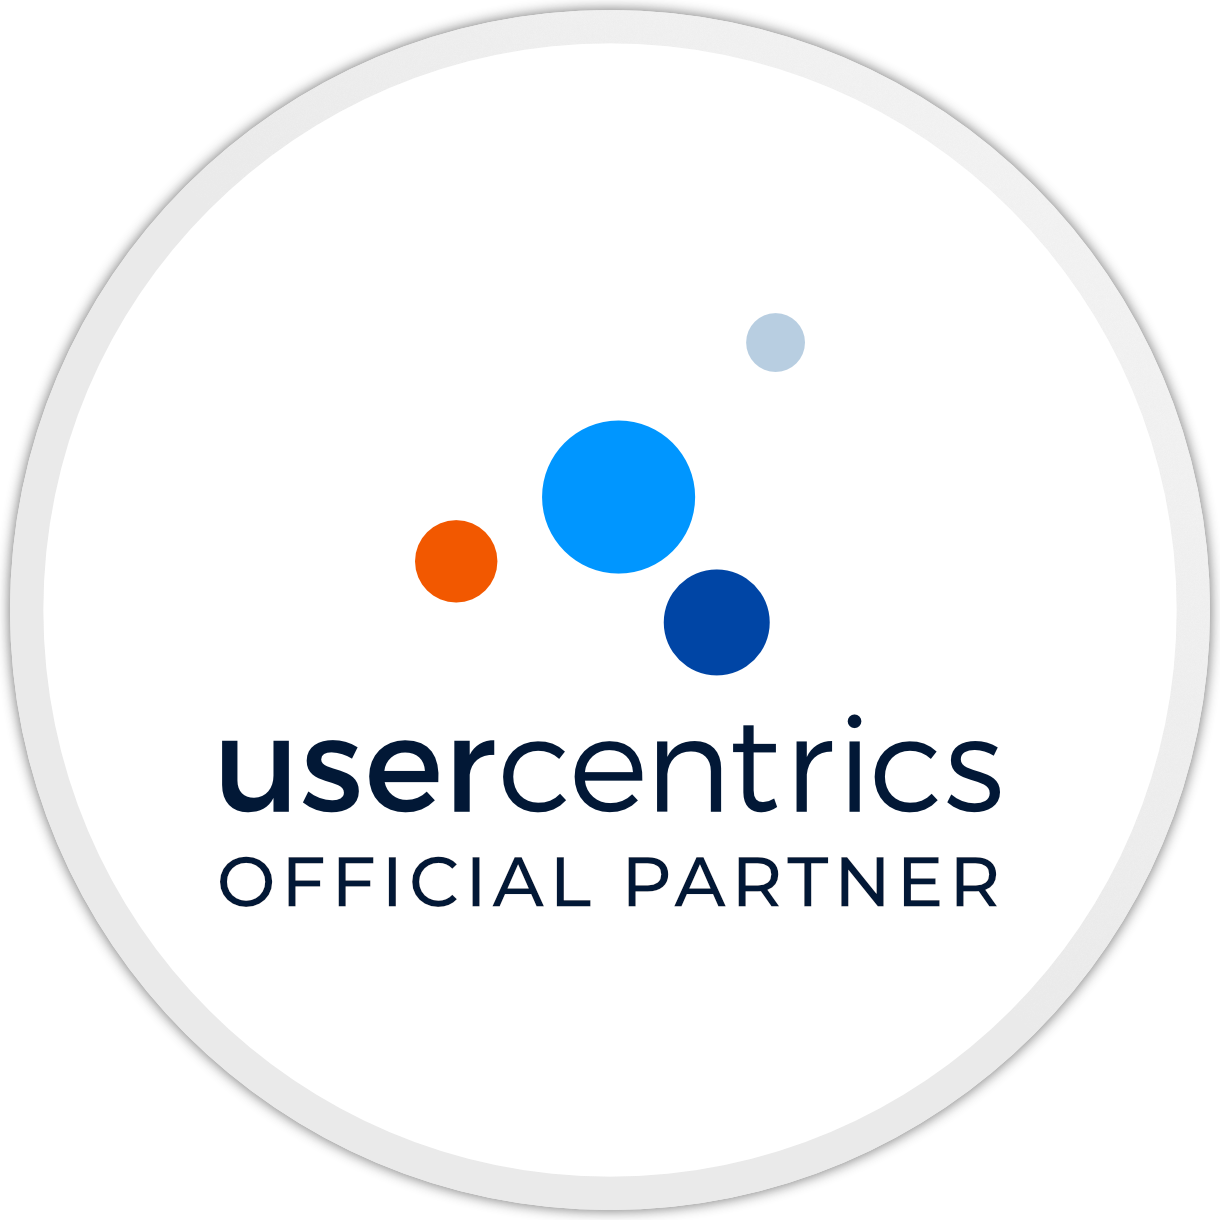 uc-official-partner-round